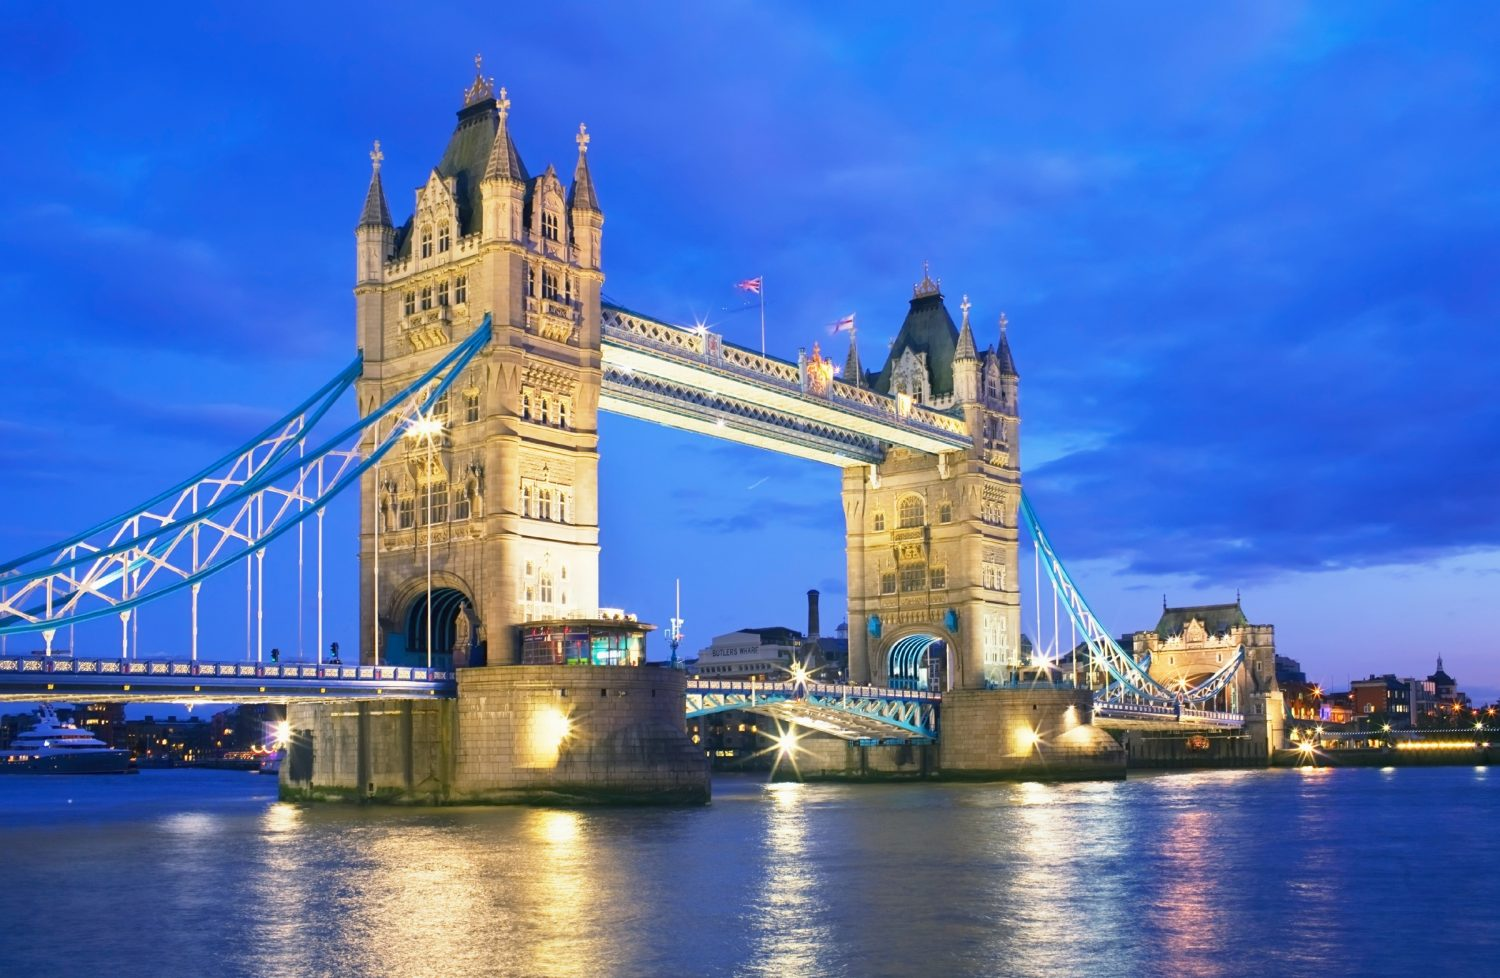 Tower Bridge in London, England. Image: Marco Simoni/Getty Images